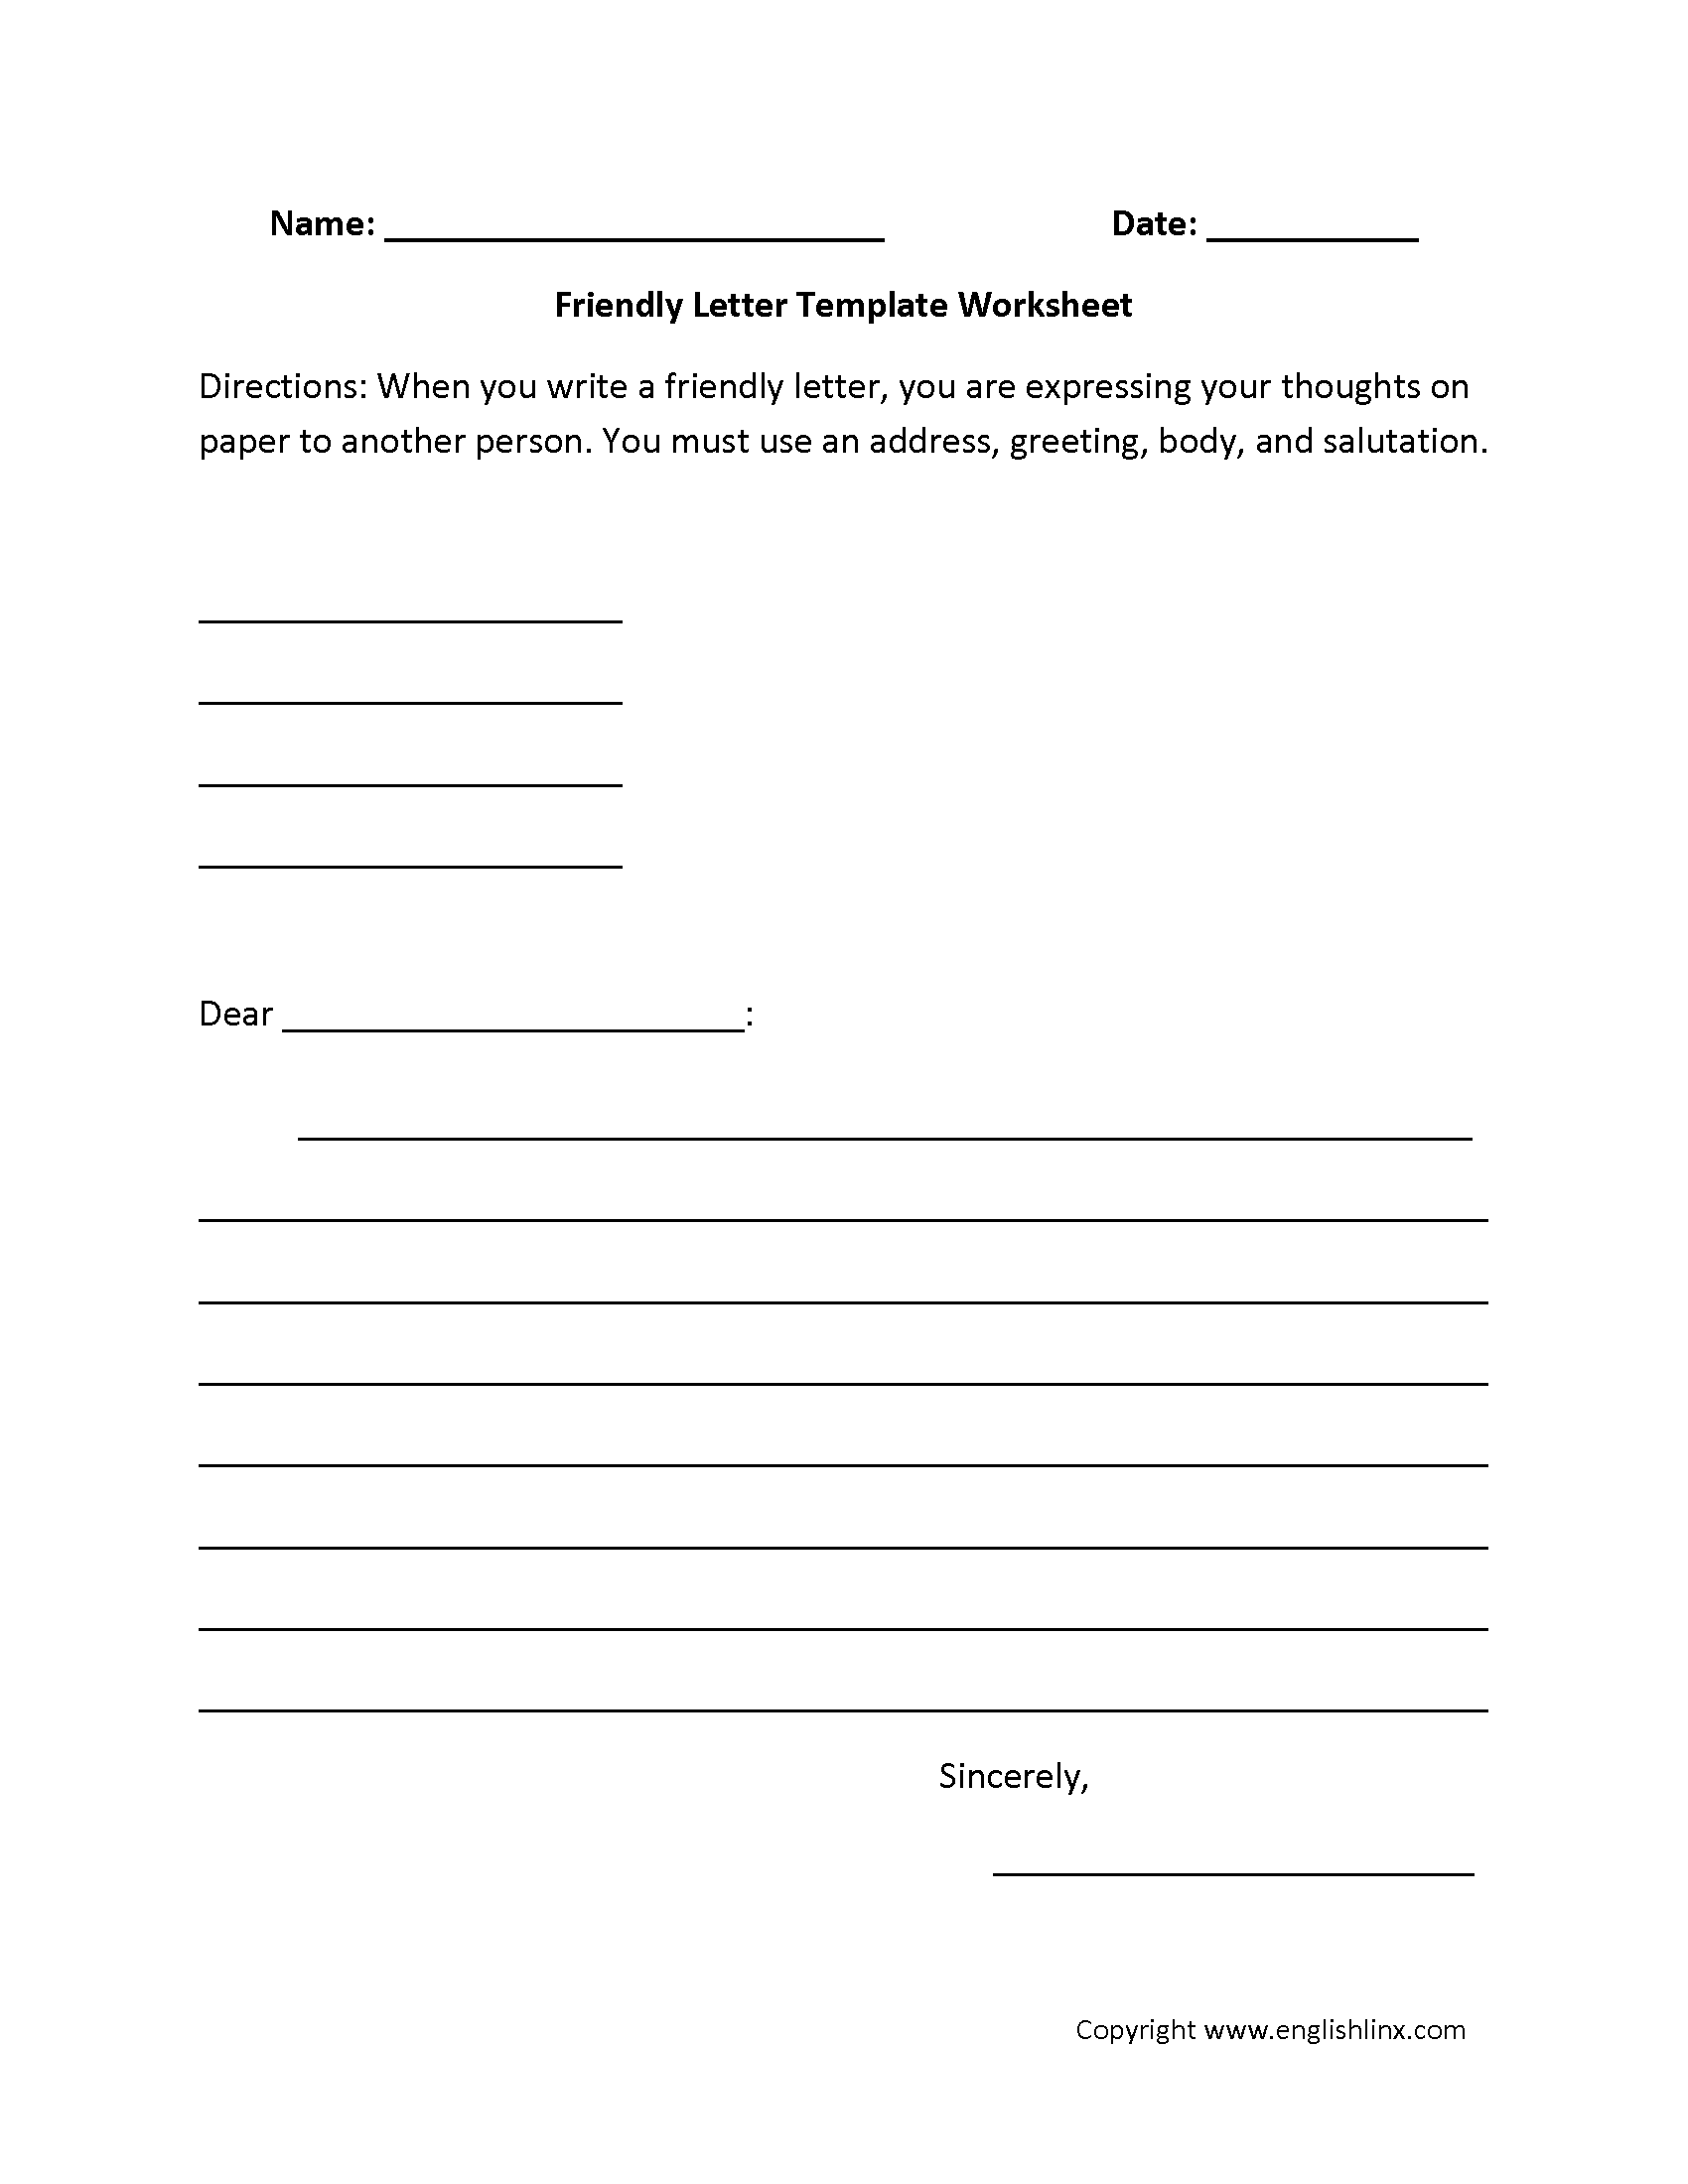 011 Essay Example About Friendly Stupendous On Eco Diwali In Hindi Environmentally Letter Full